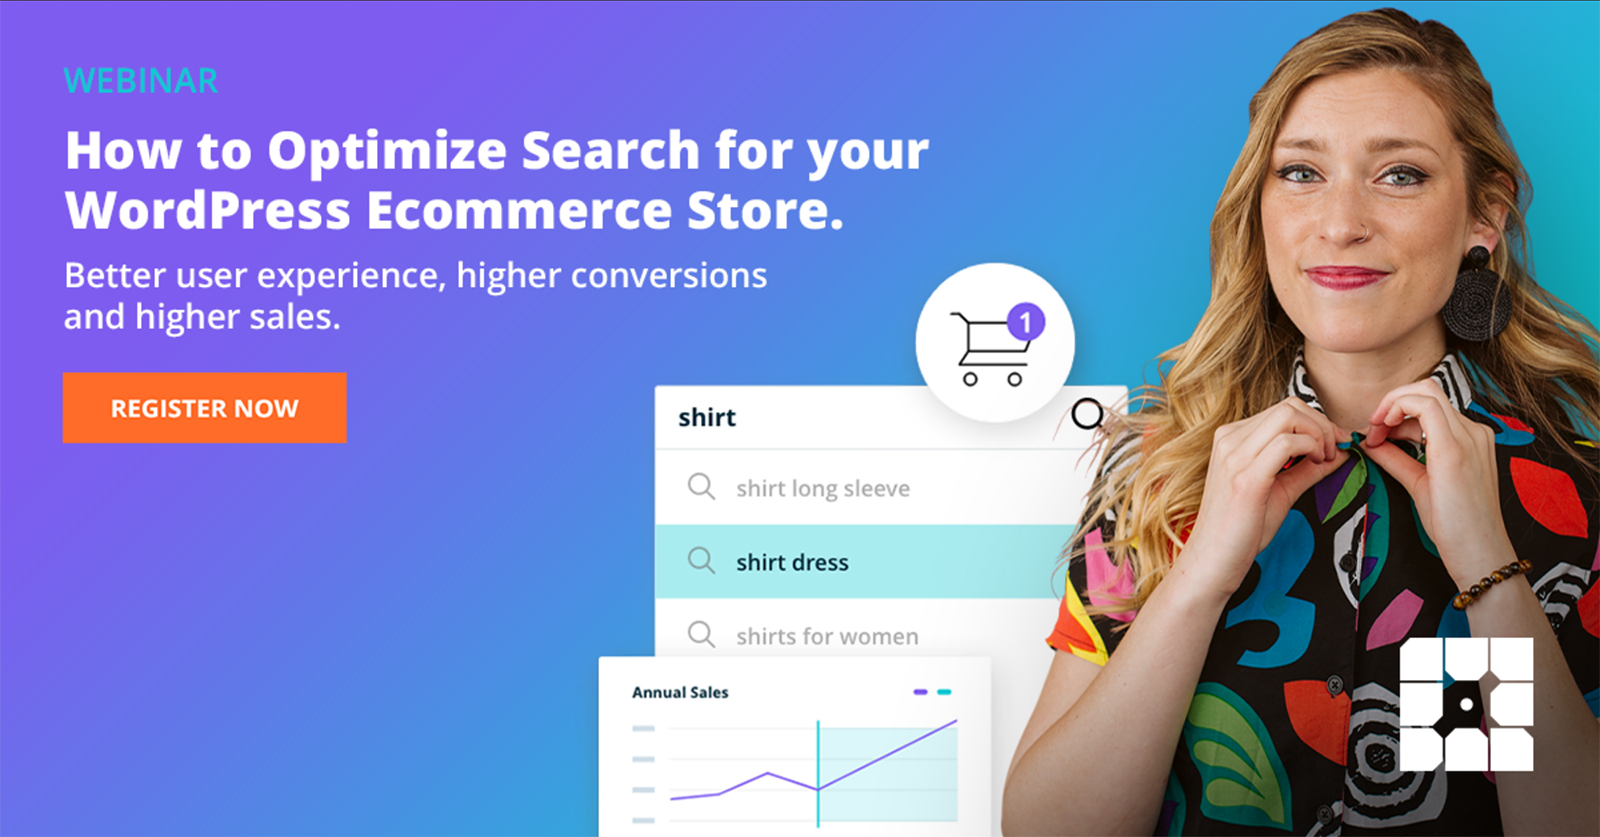 Optimize Ecommerce Search